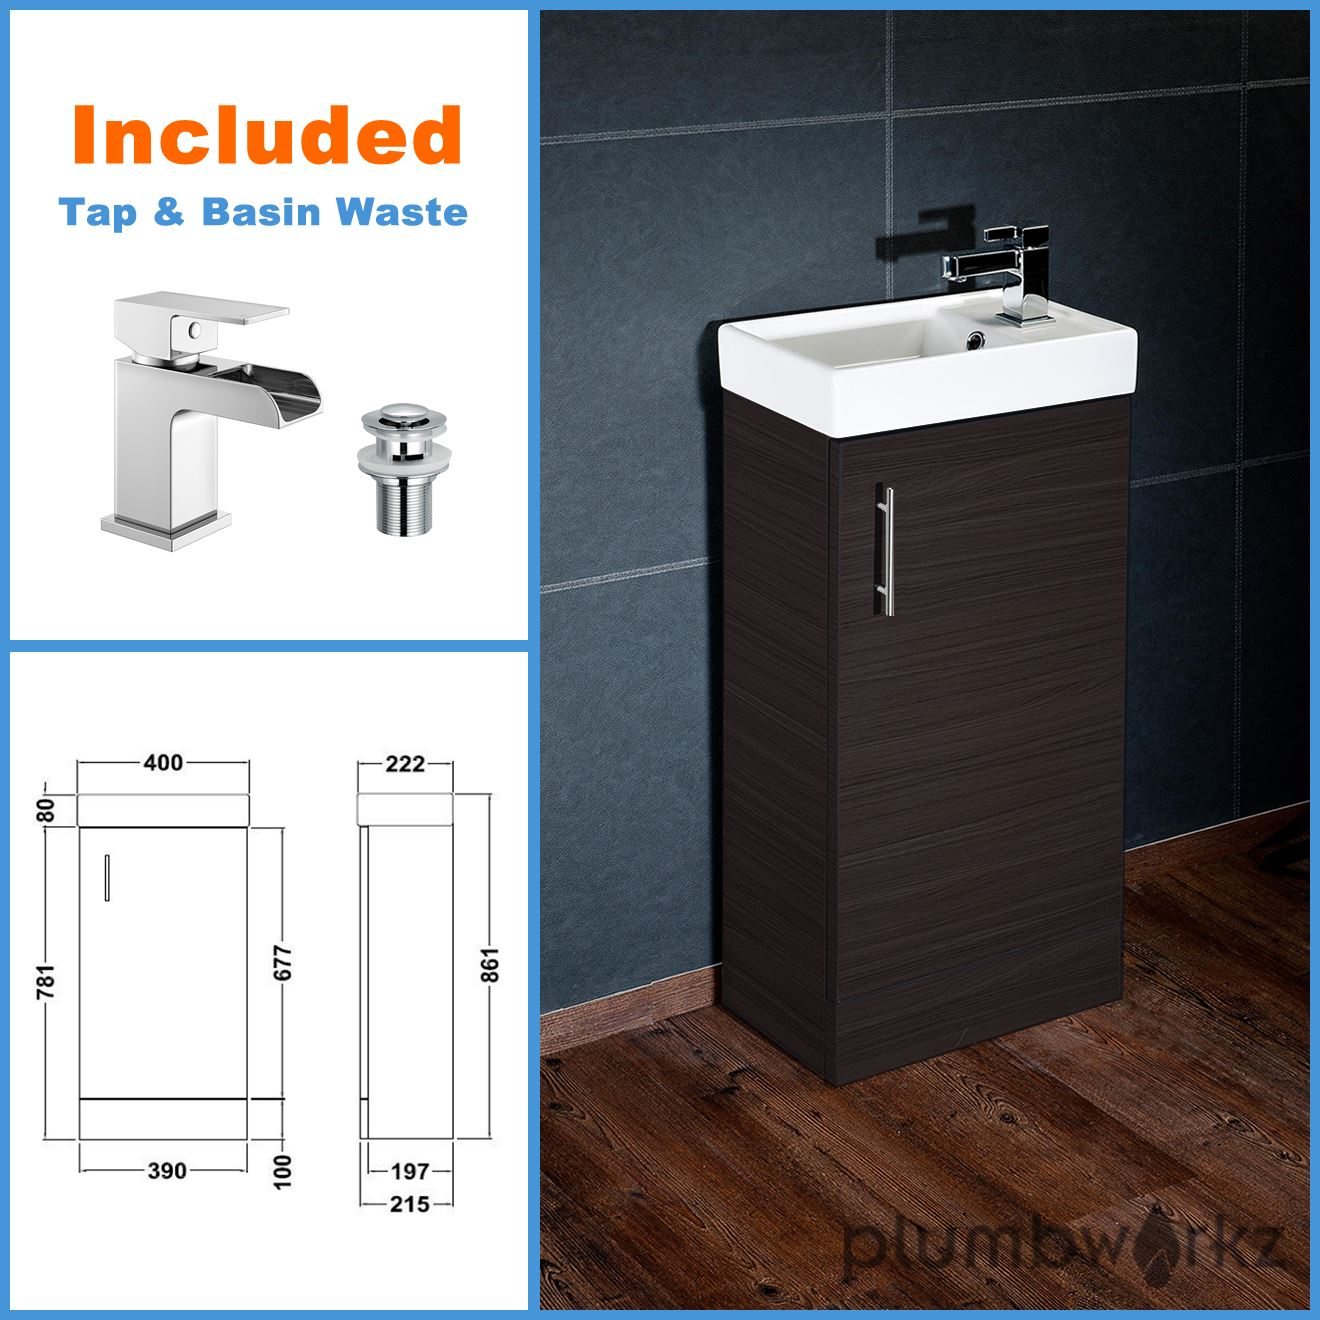 Compact Bathroom Vanity Unit Basin Sink Vanity 400mm Floor Standing Tap Waste Ebay